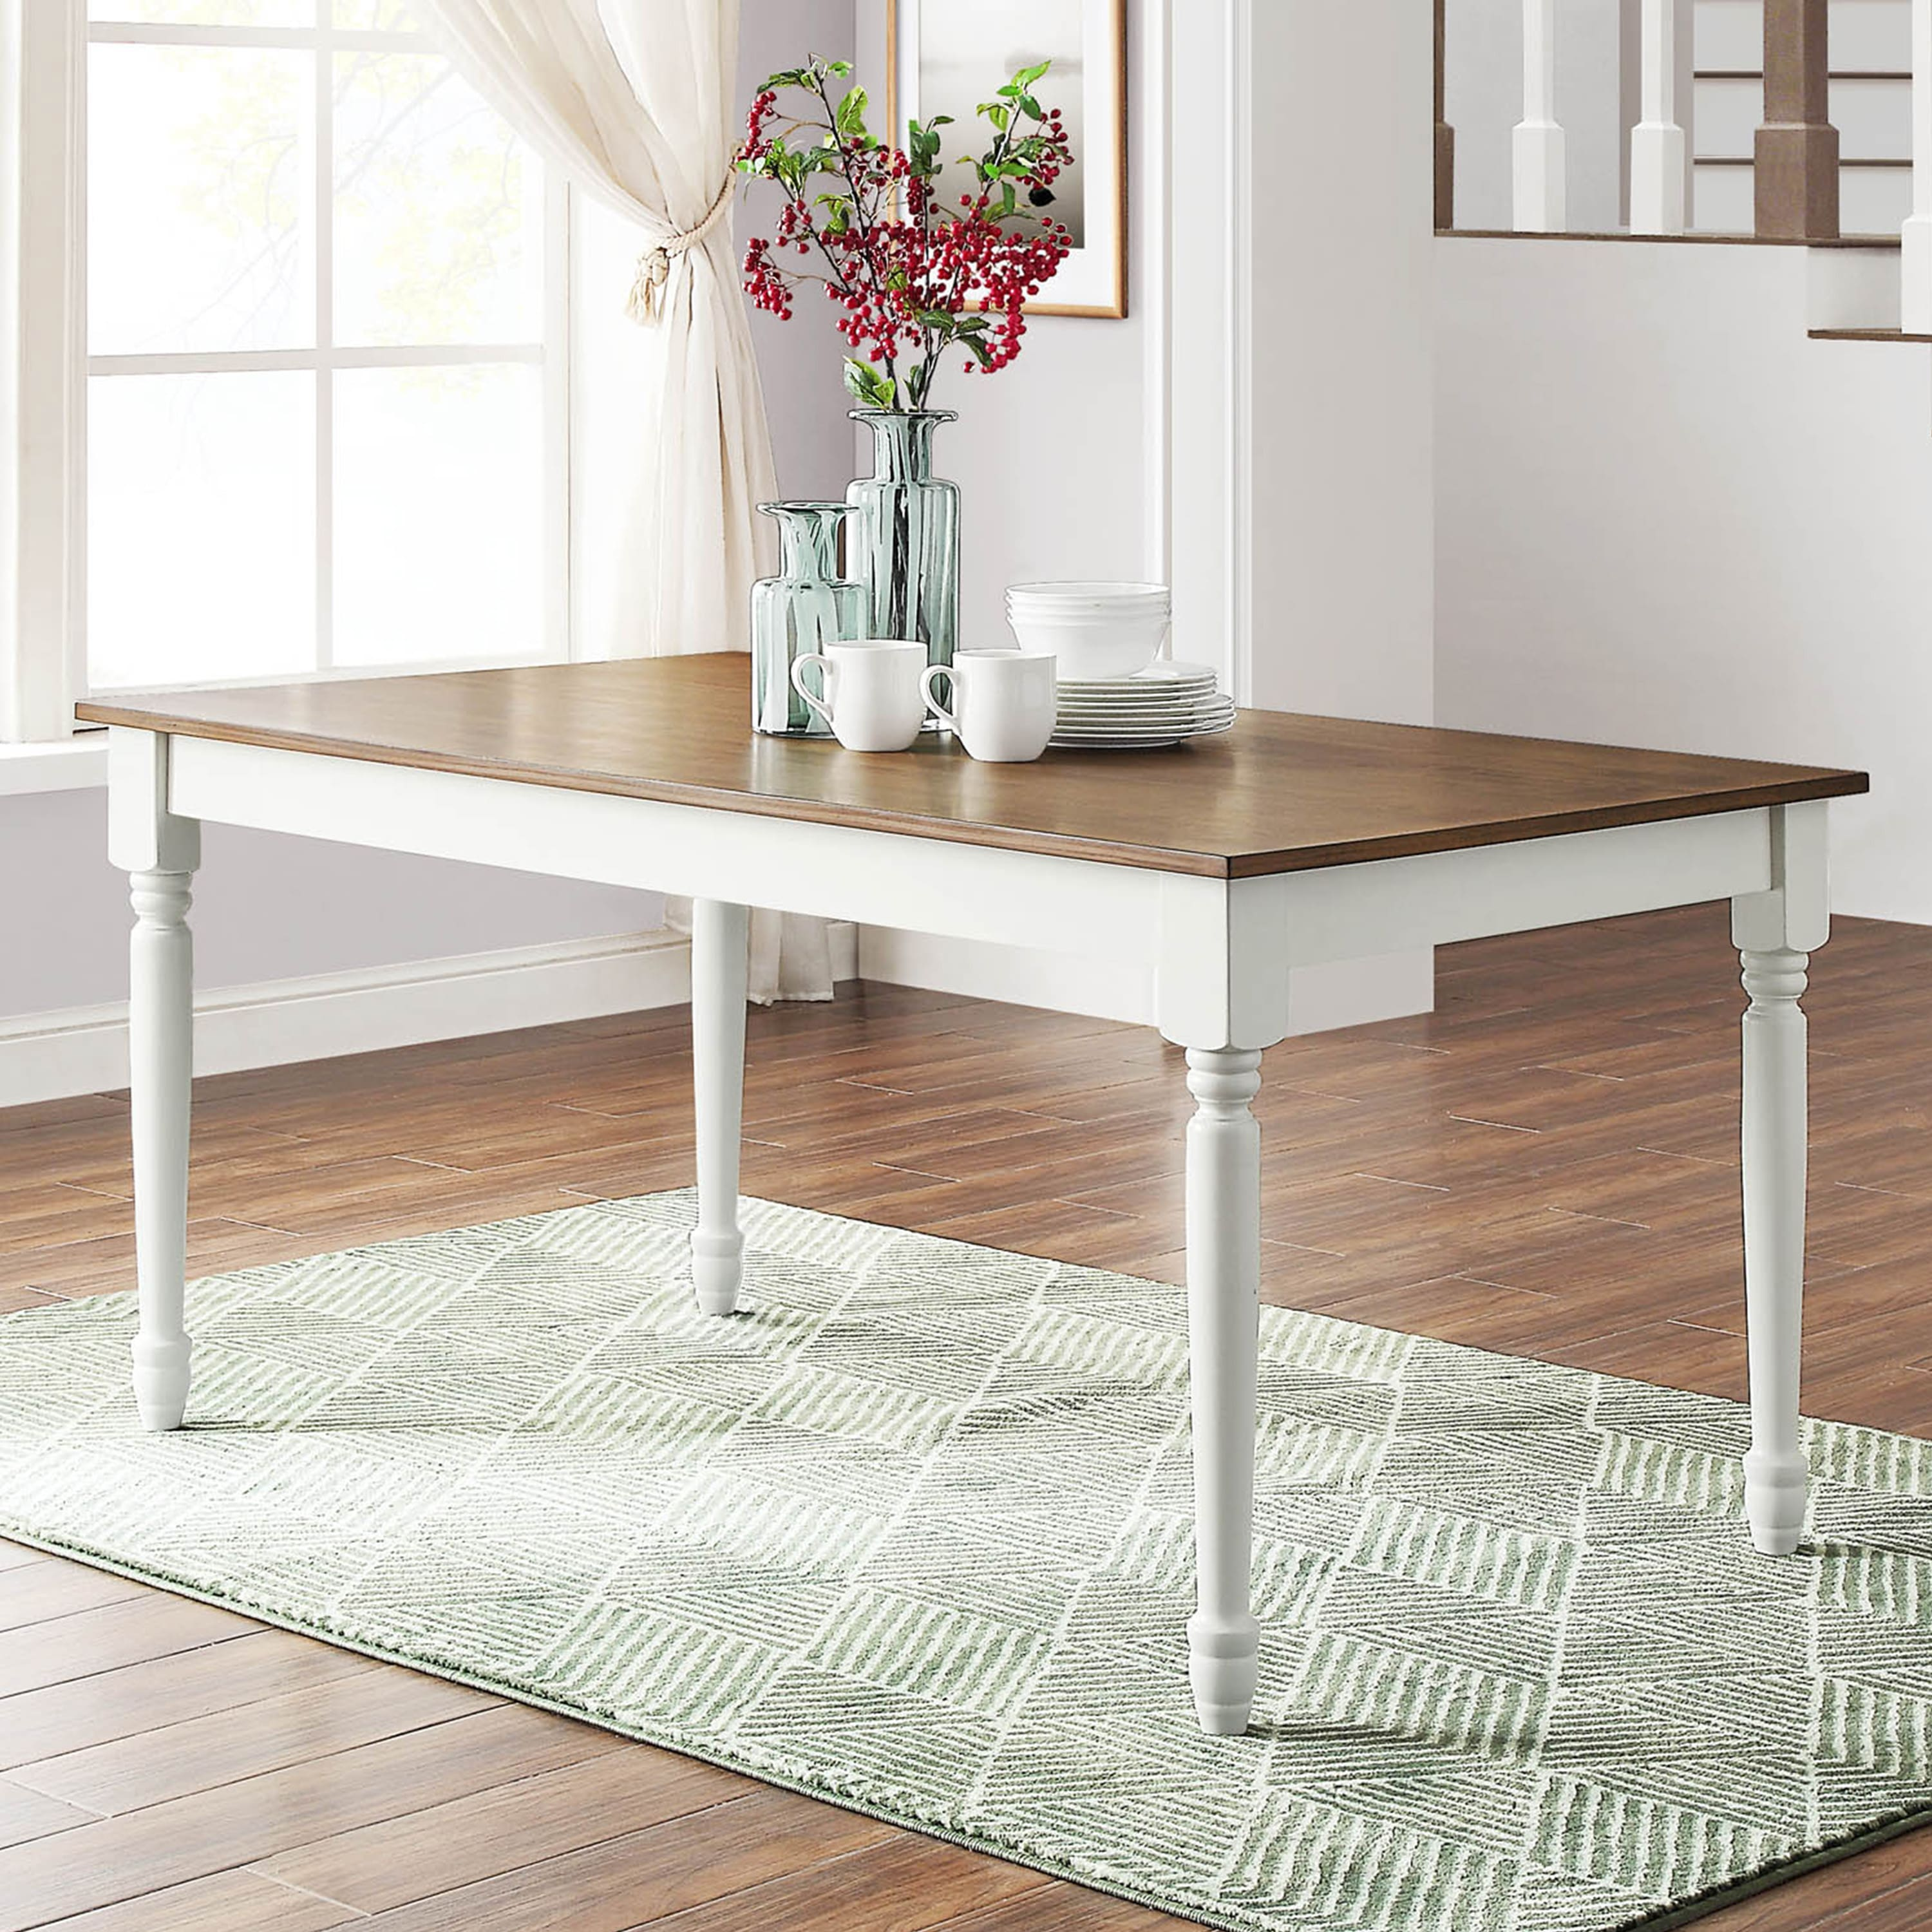 Better Homes & Gardens Harvest Lane Dining Table $68 + Free Shipping